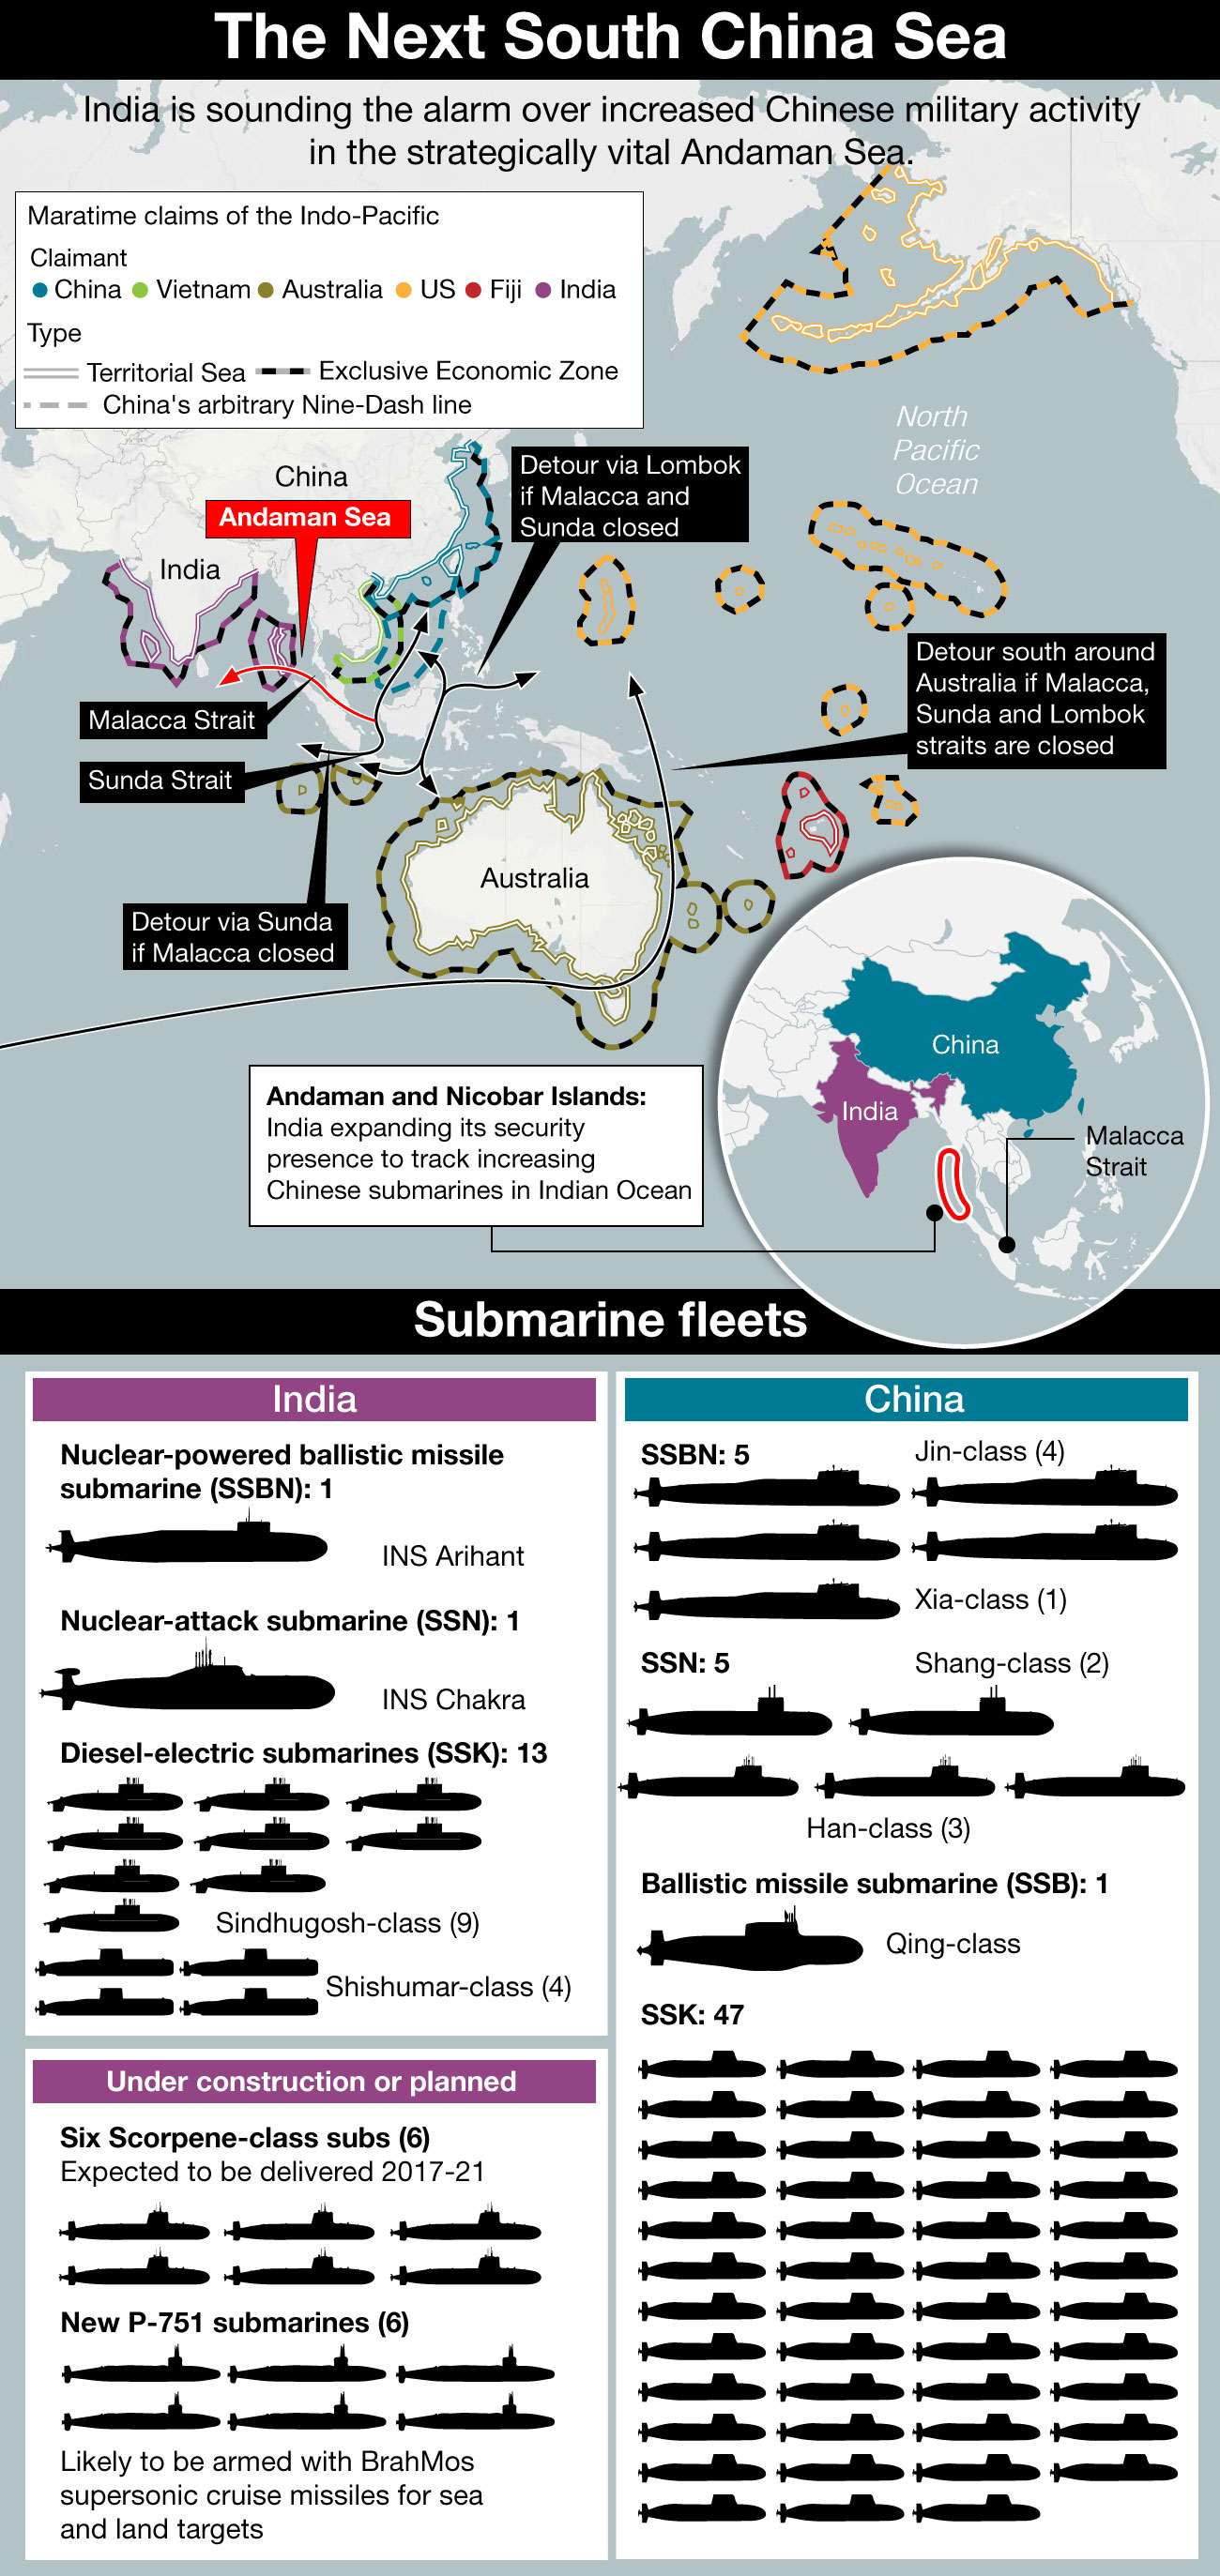 NED-917-The Next South China Sea infographic - 0